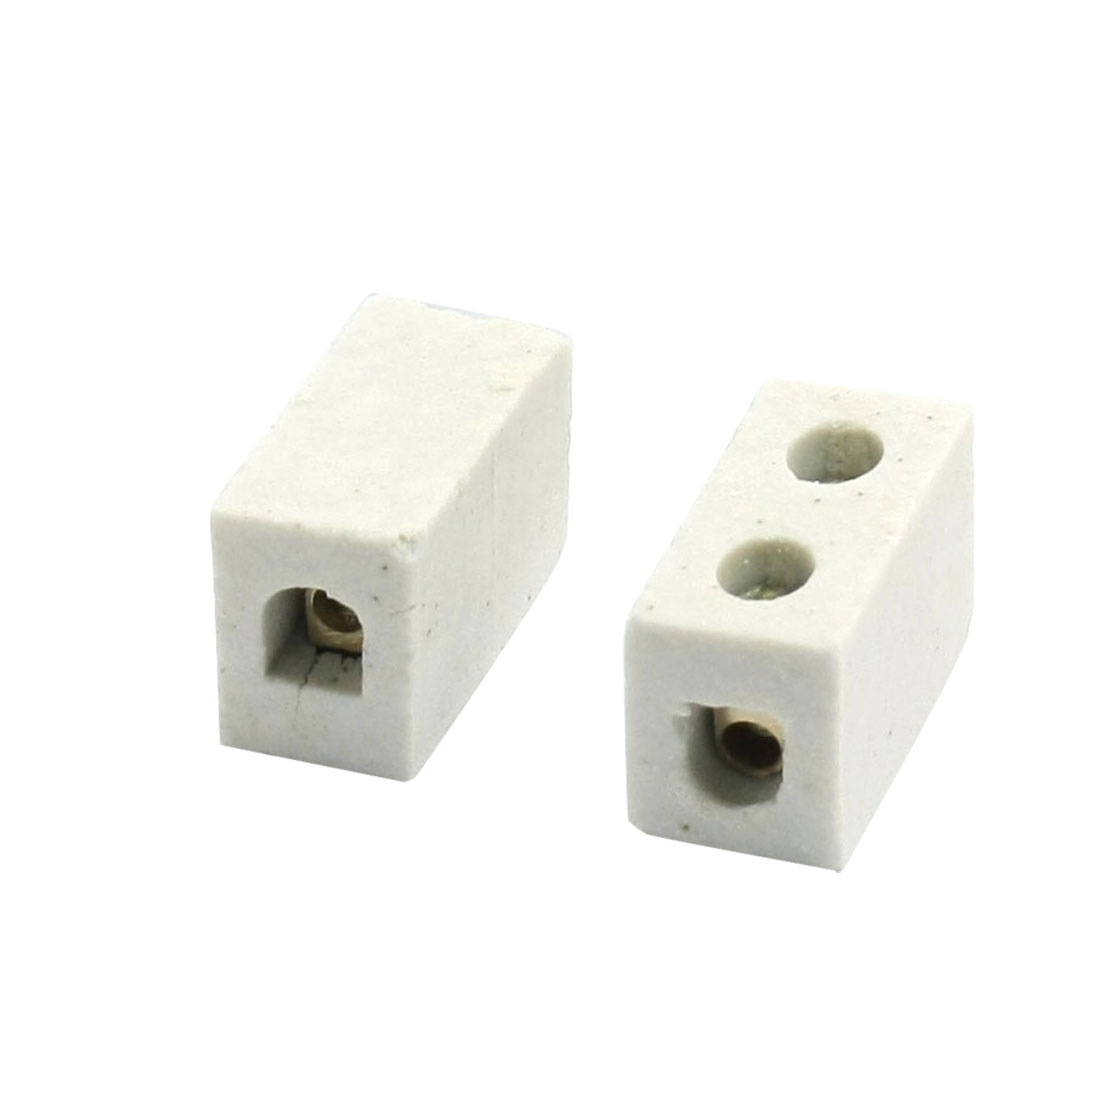 2 Pcs 1W2H High Temperature Porcelain Ceramic Terminal Block 5A 110-600V